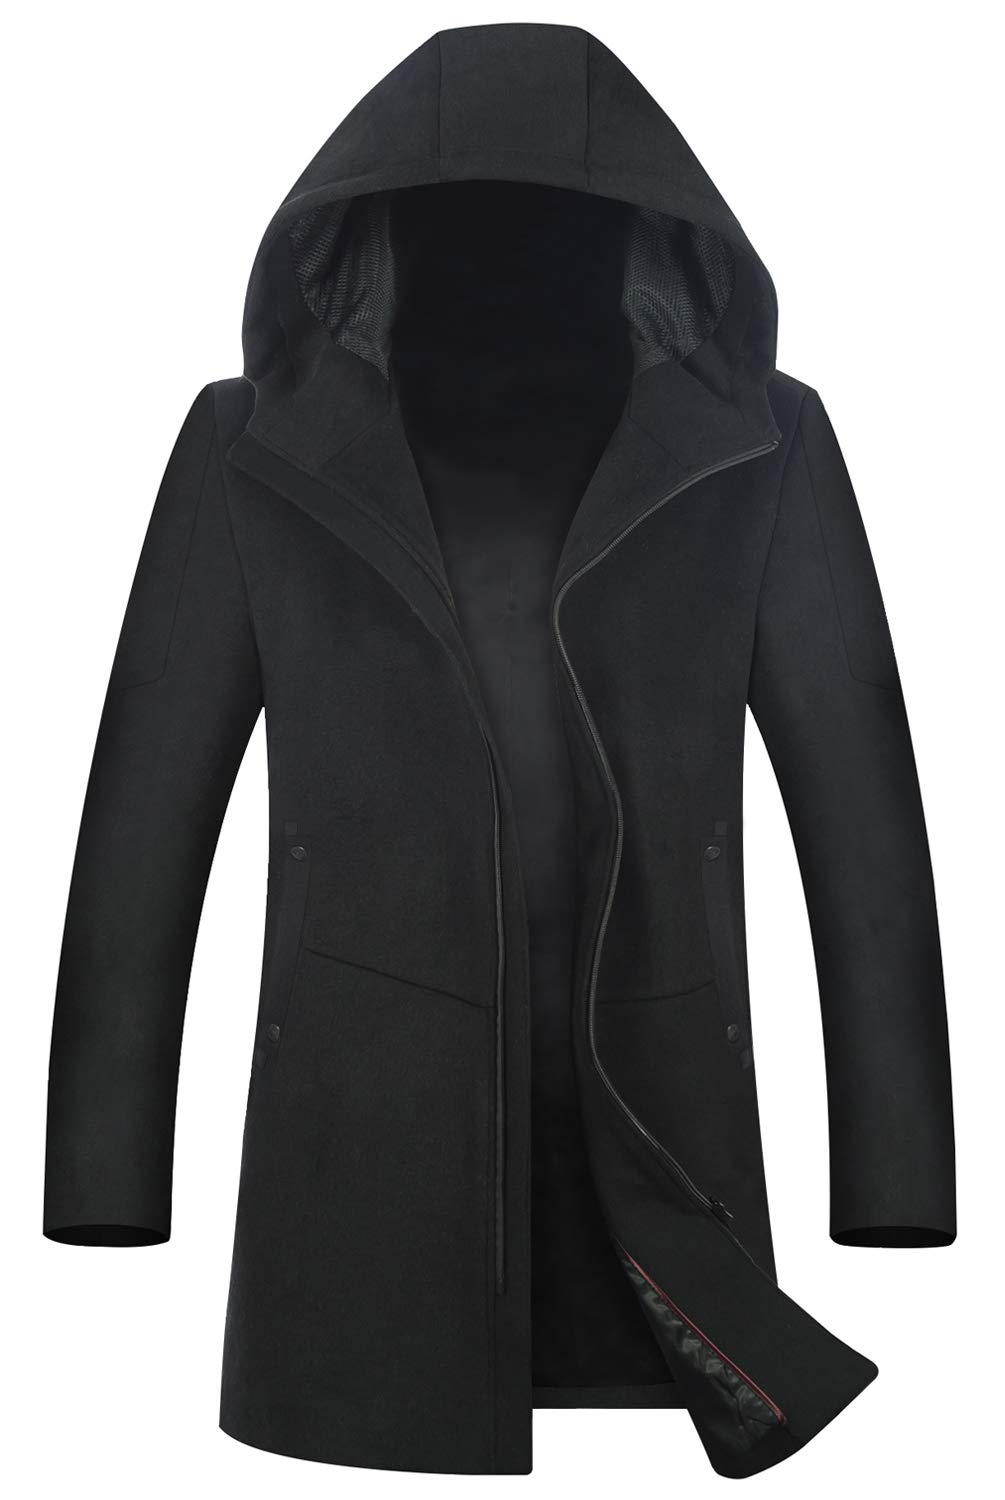 Men's Coat 80% Wool Content Classic Hooded Jacket Winter Stylish Trench Coat 1812 Black M by ELETOP